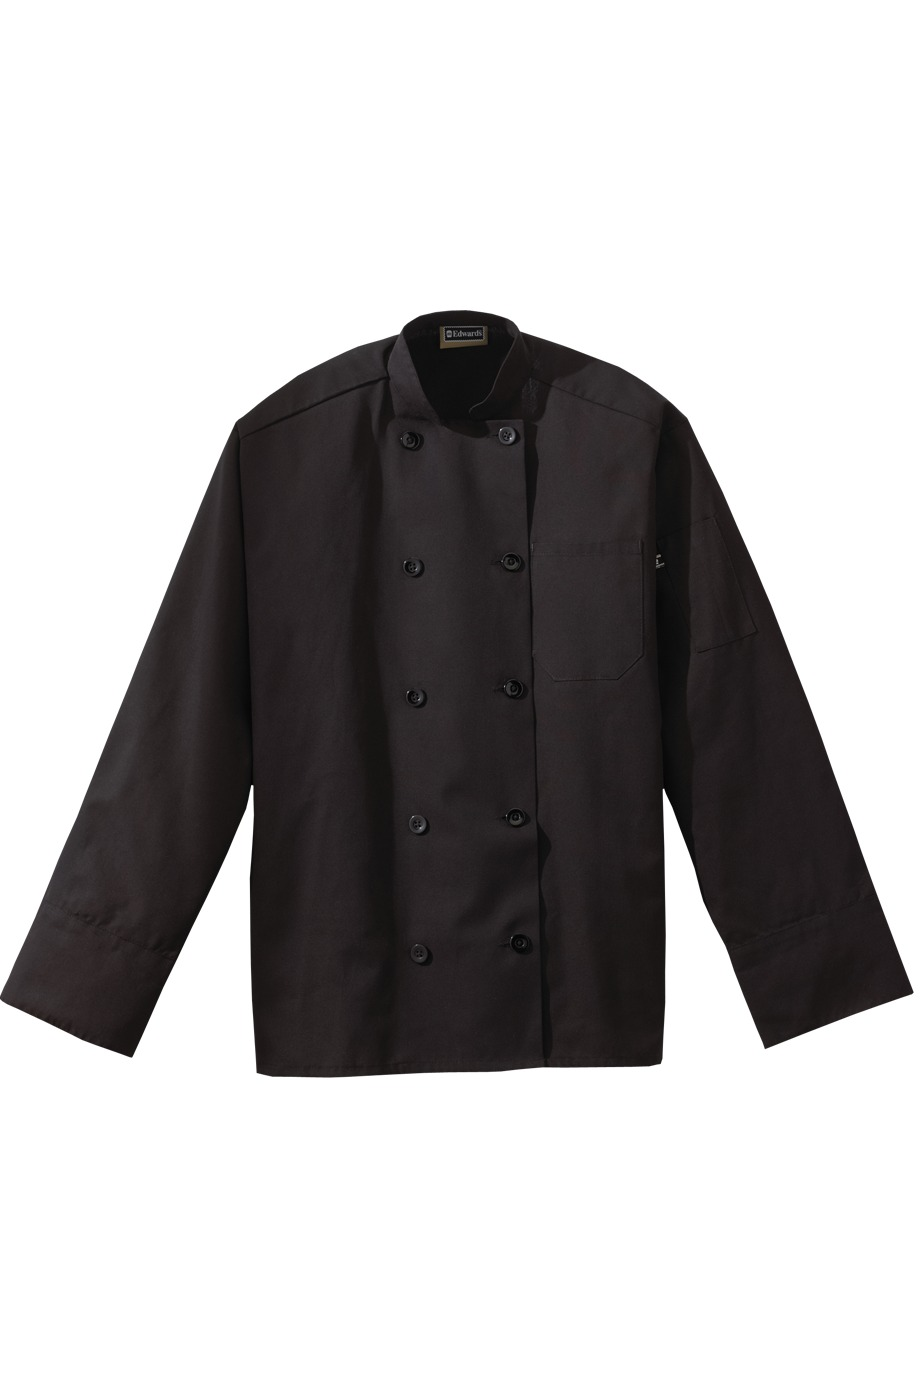 Edwards Garment 3330 - Lightweight Coat